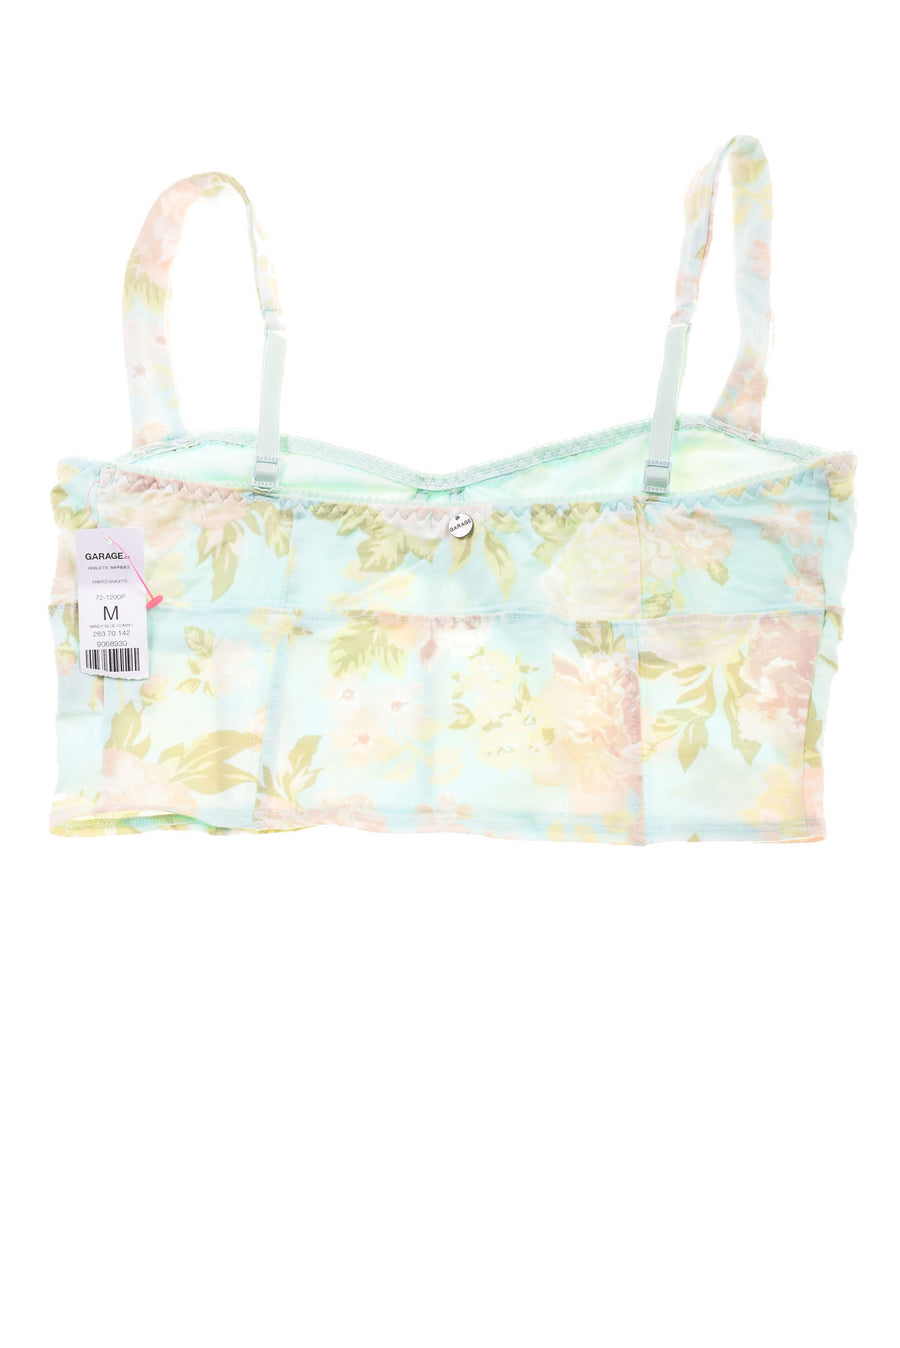 Women's Bralette By Garage